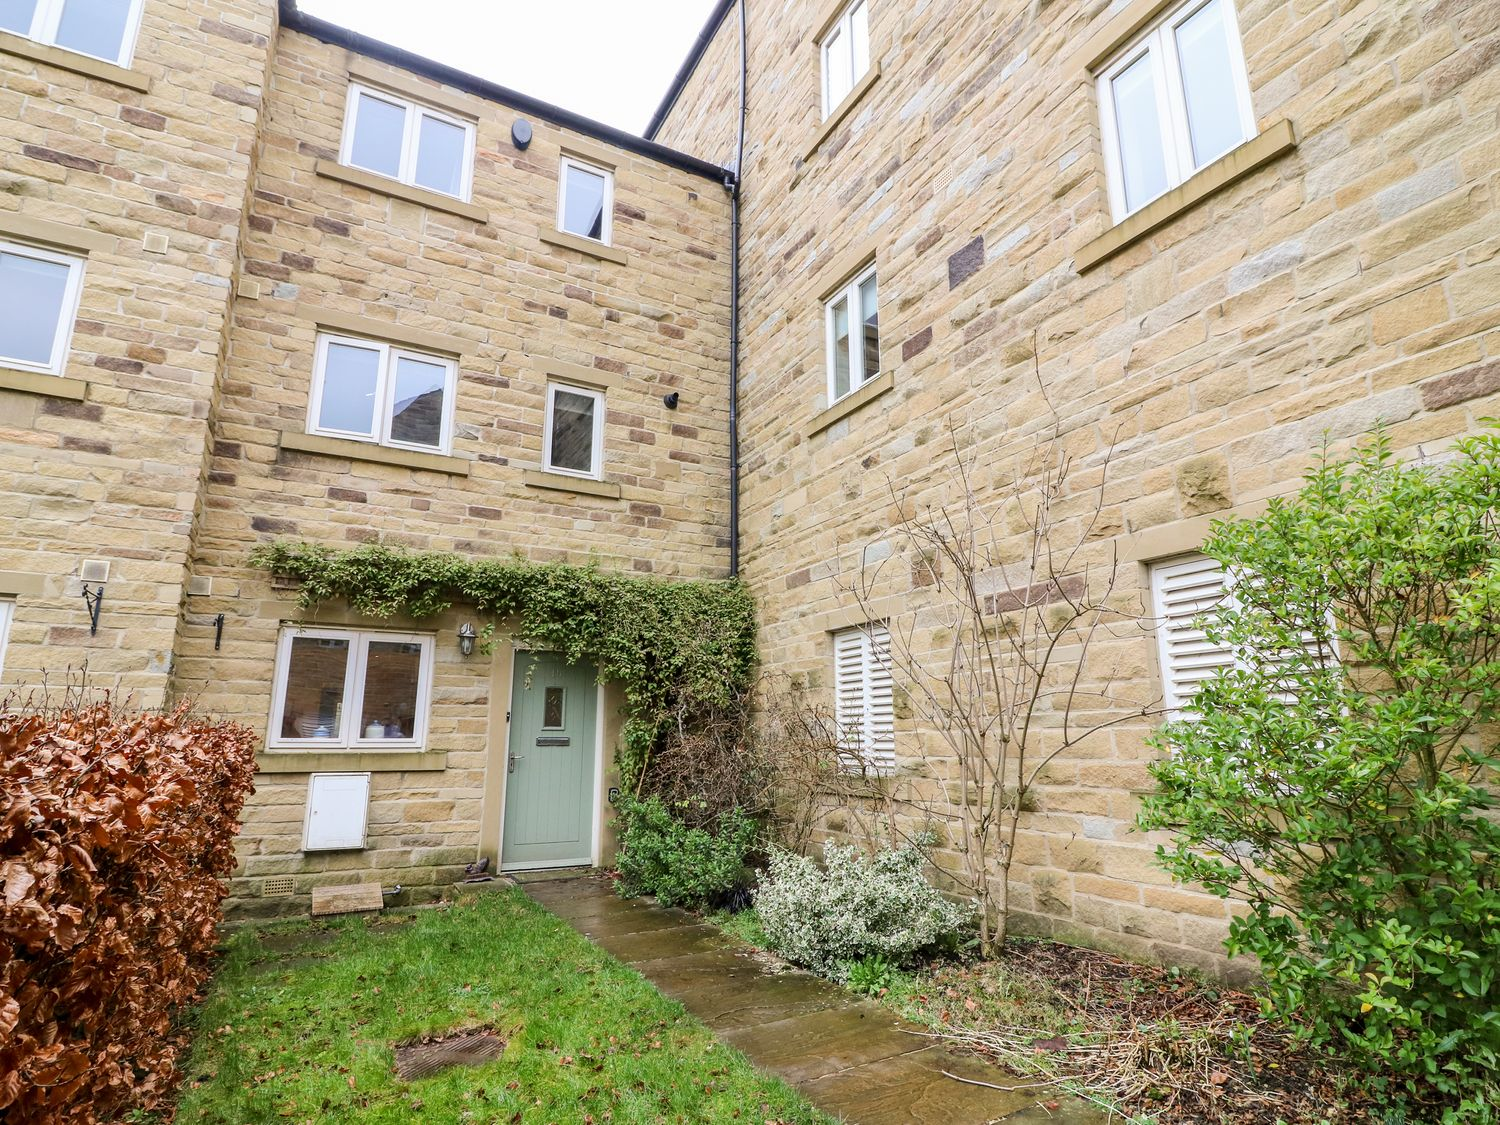 15 Tannery Lane - Yorkshire Dales - 966020 - photo 1